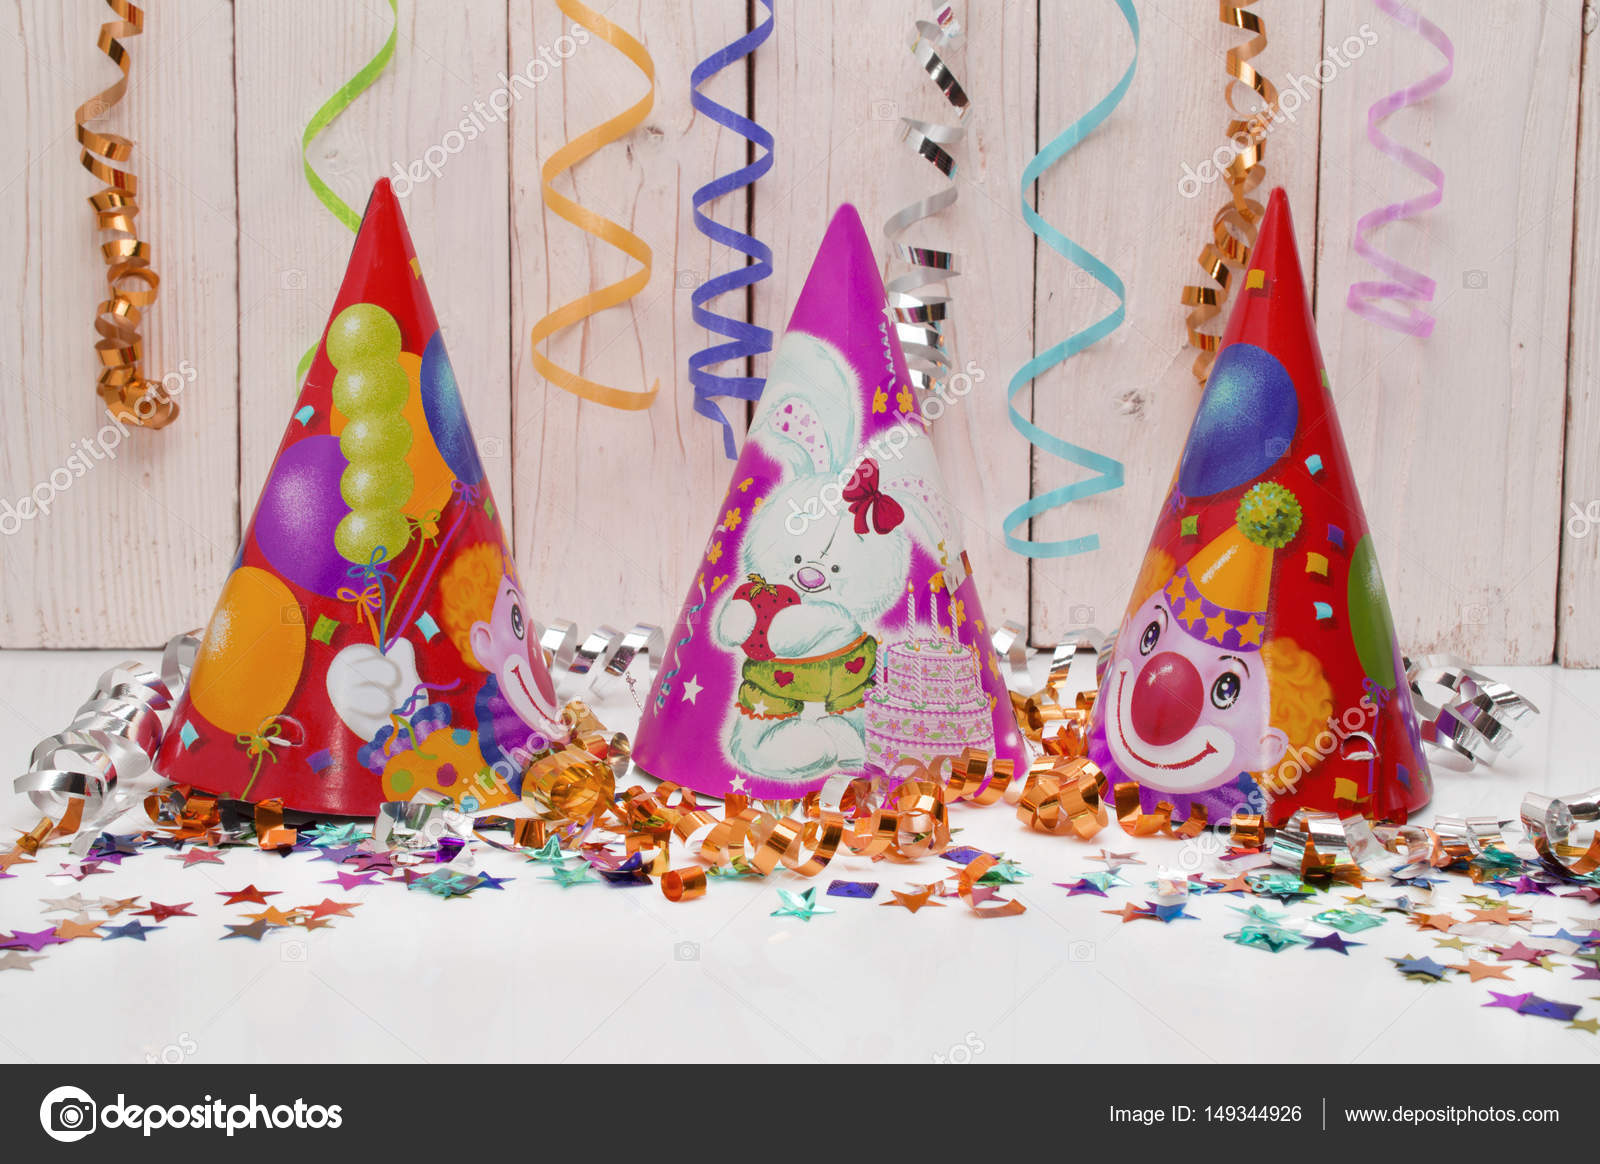 Greeting Card For Carnival Party Hat And Candles On White Background Toning Instagram Filter